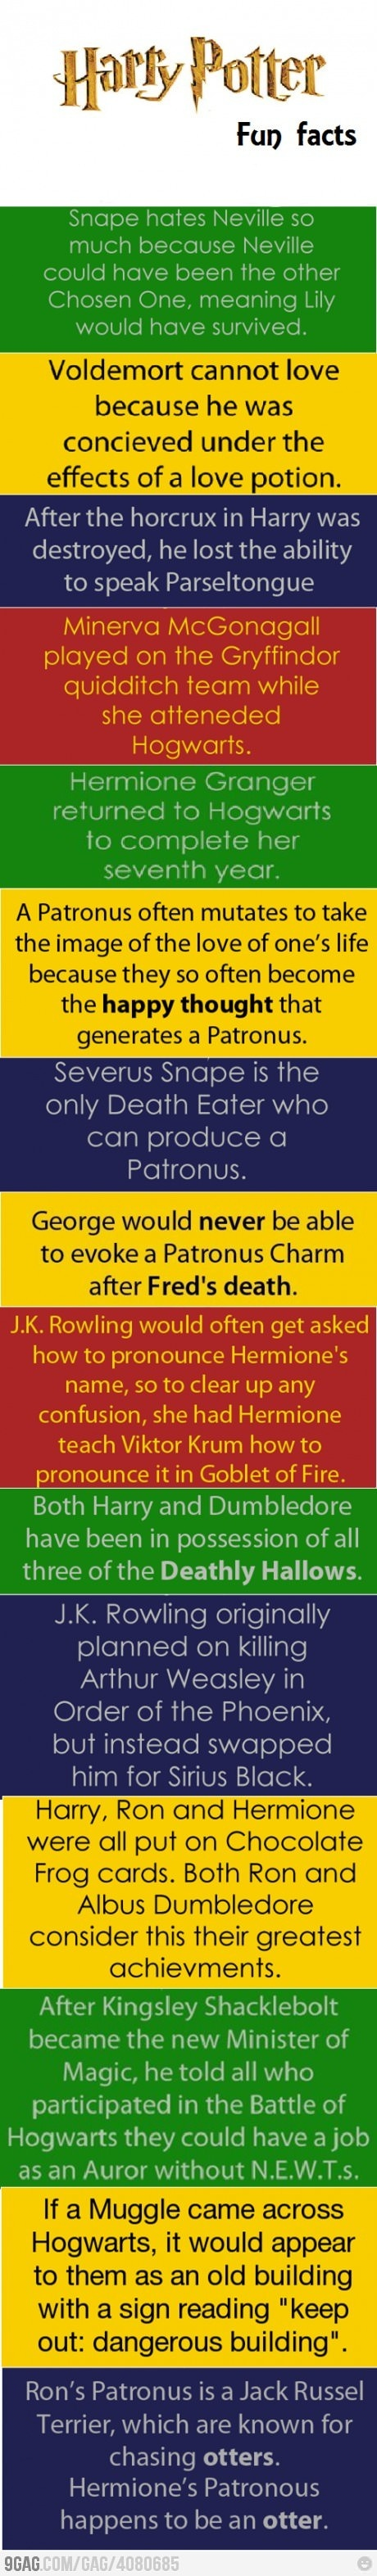 Harry Potter Book Facts : Harry potter fun facts i love books pinterest